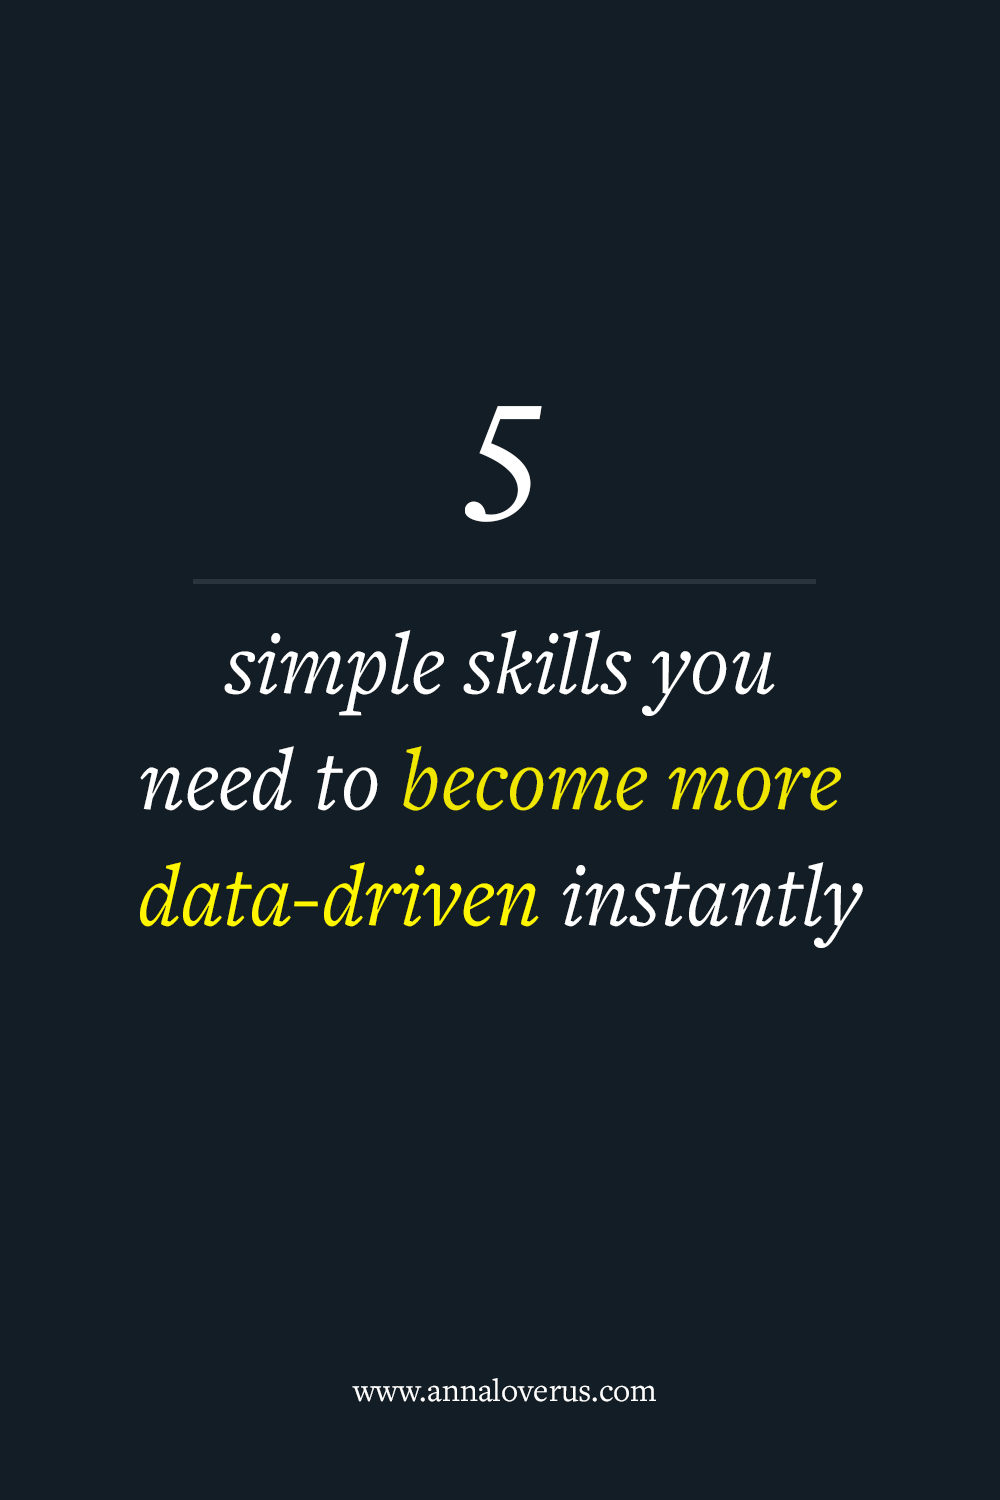 With marketing moving towards being more data-driven, we all need to update our skillsets if we want to stay on top. Being a math geek, I've listed five simple skills I think you should learn to get started.